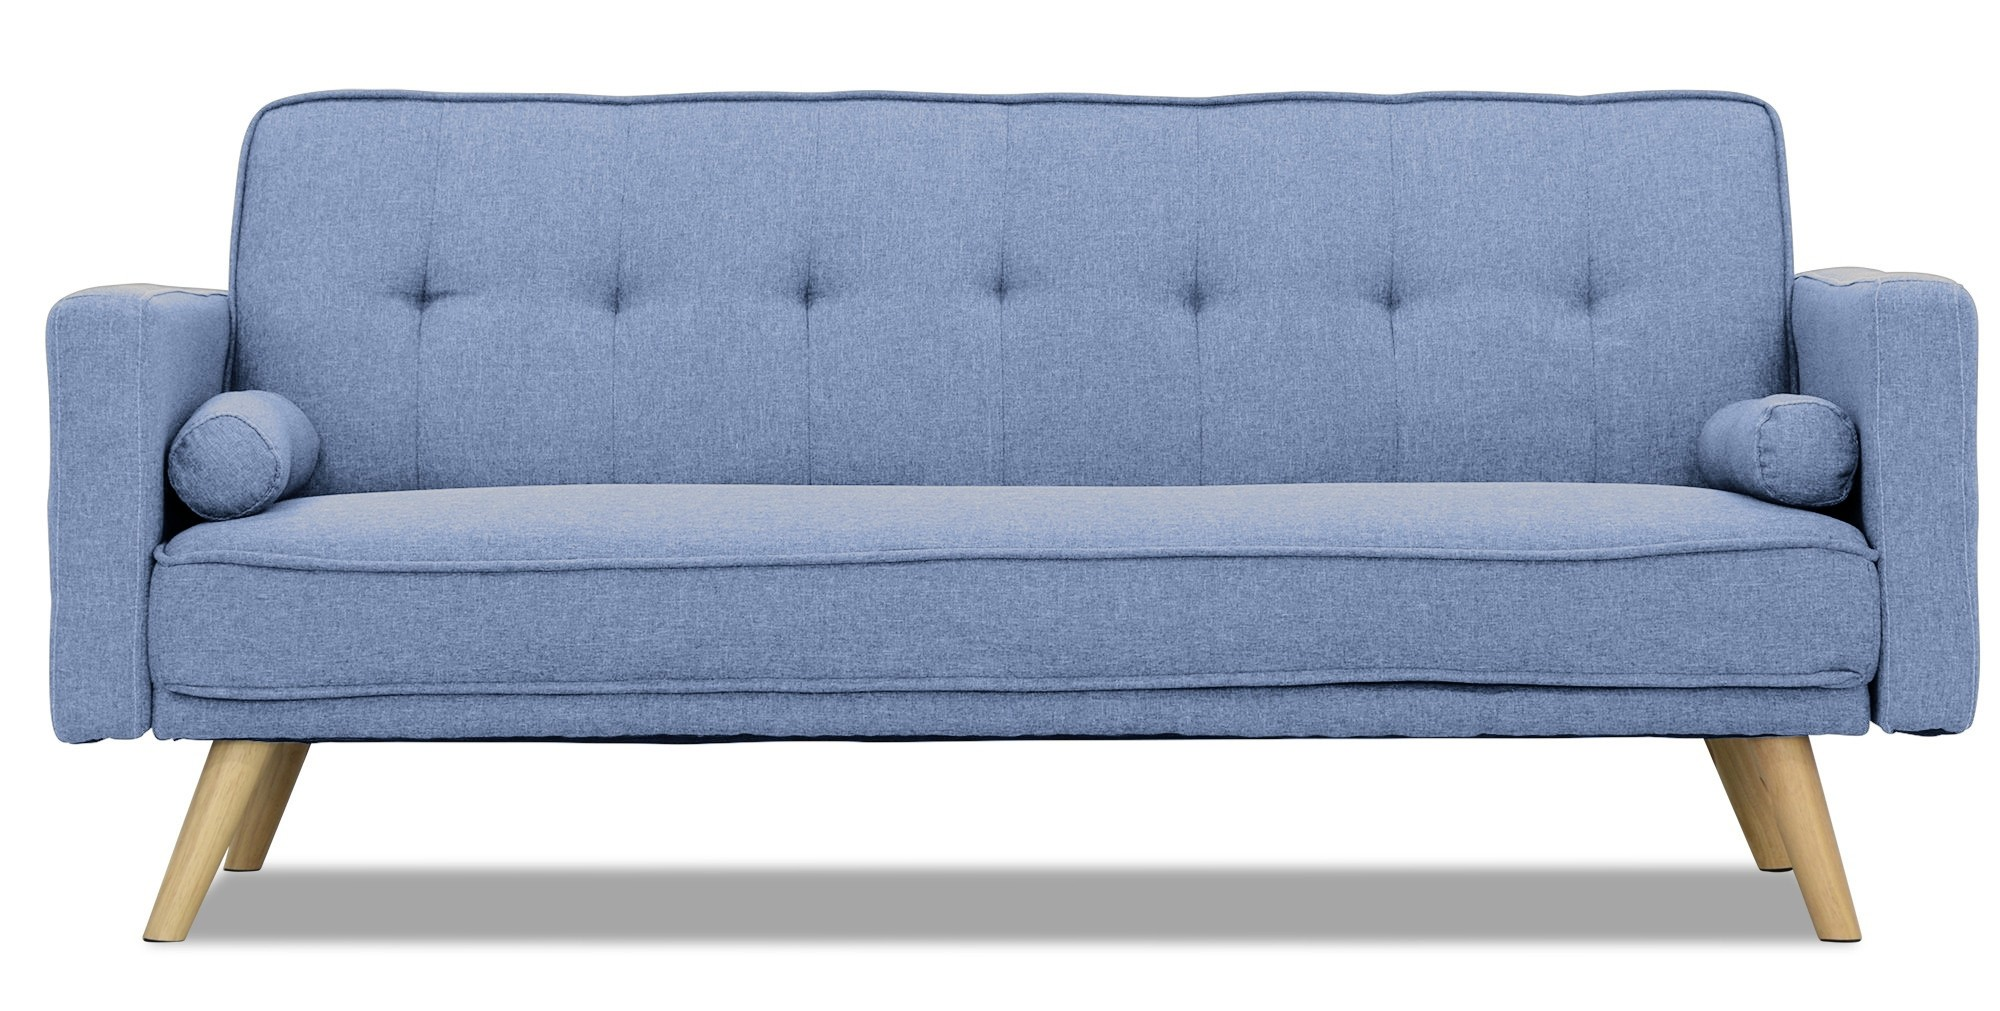 blue denim sofa bed good sofas for dog owners rhona beds and day